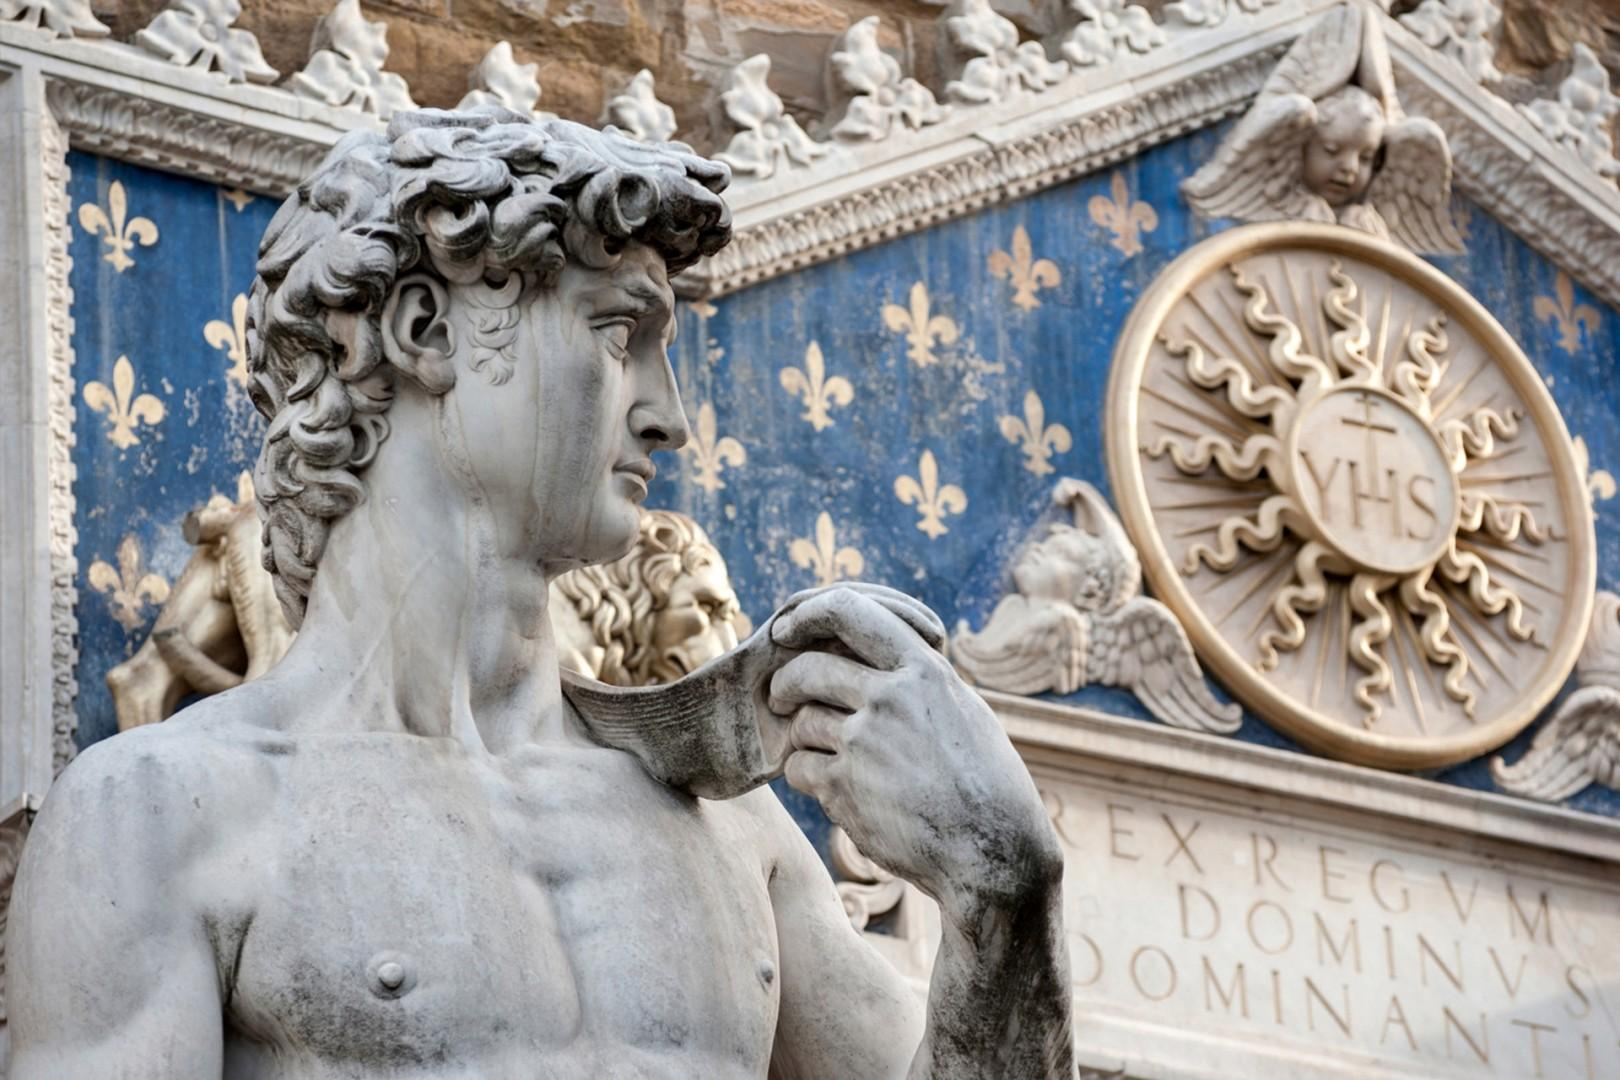 Michelangelo's David reigns over Piazza della Signoria. This copy asserts Florence as the _little guy_ standing up to the giant France.